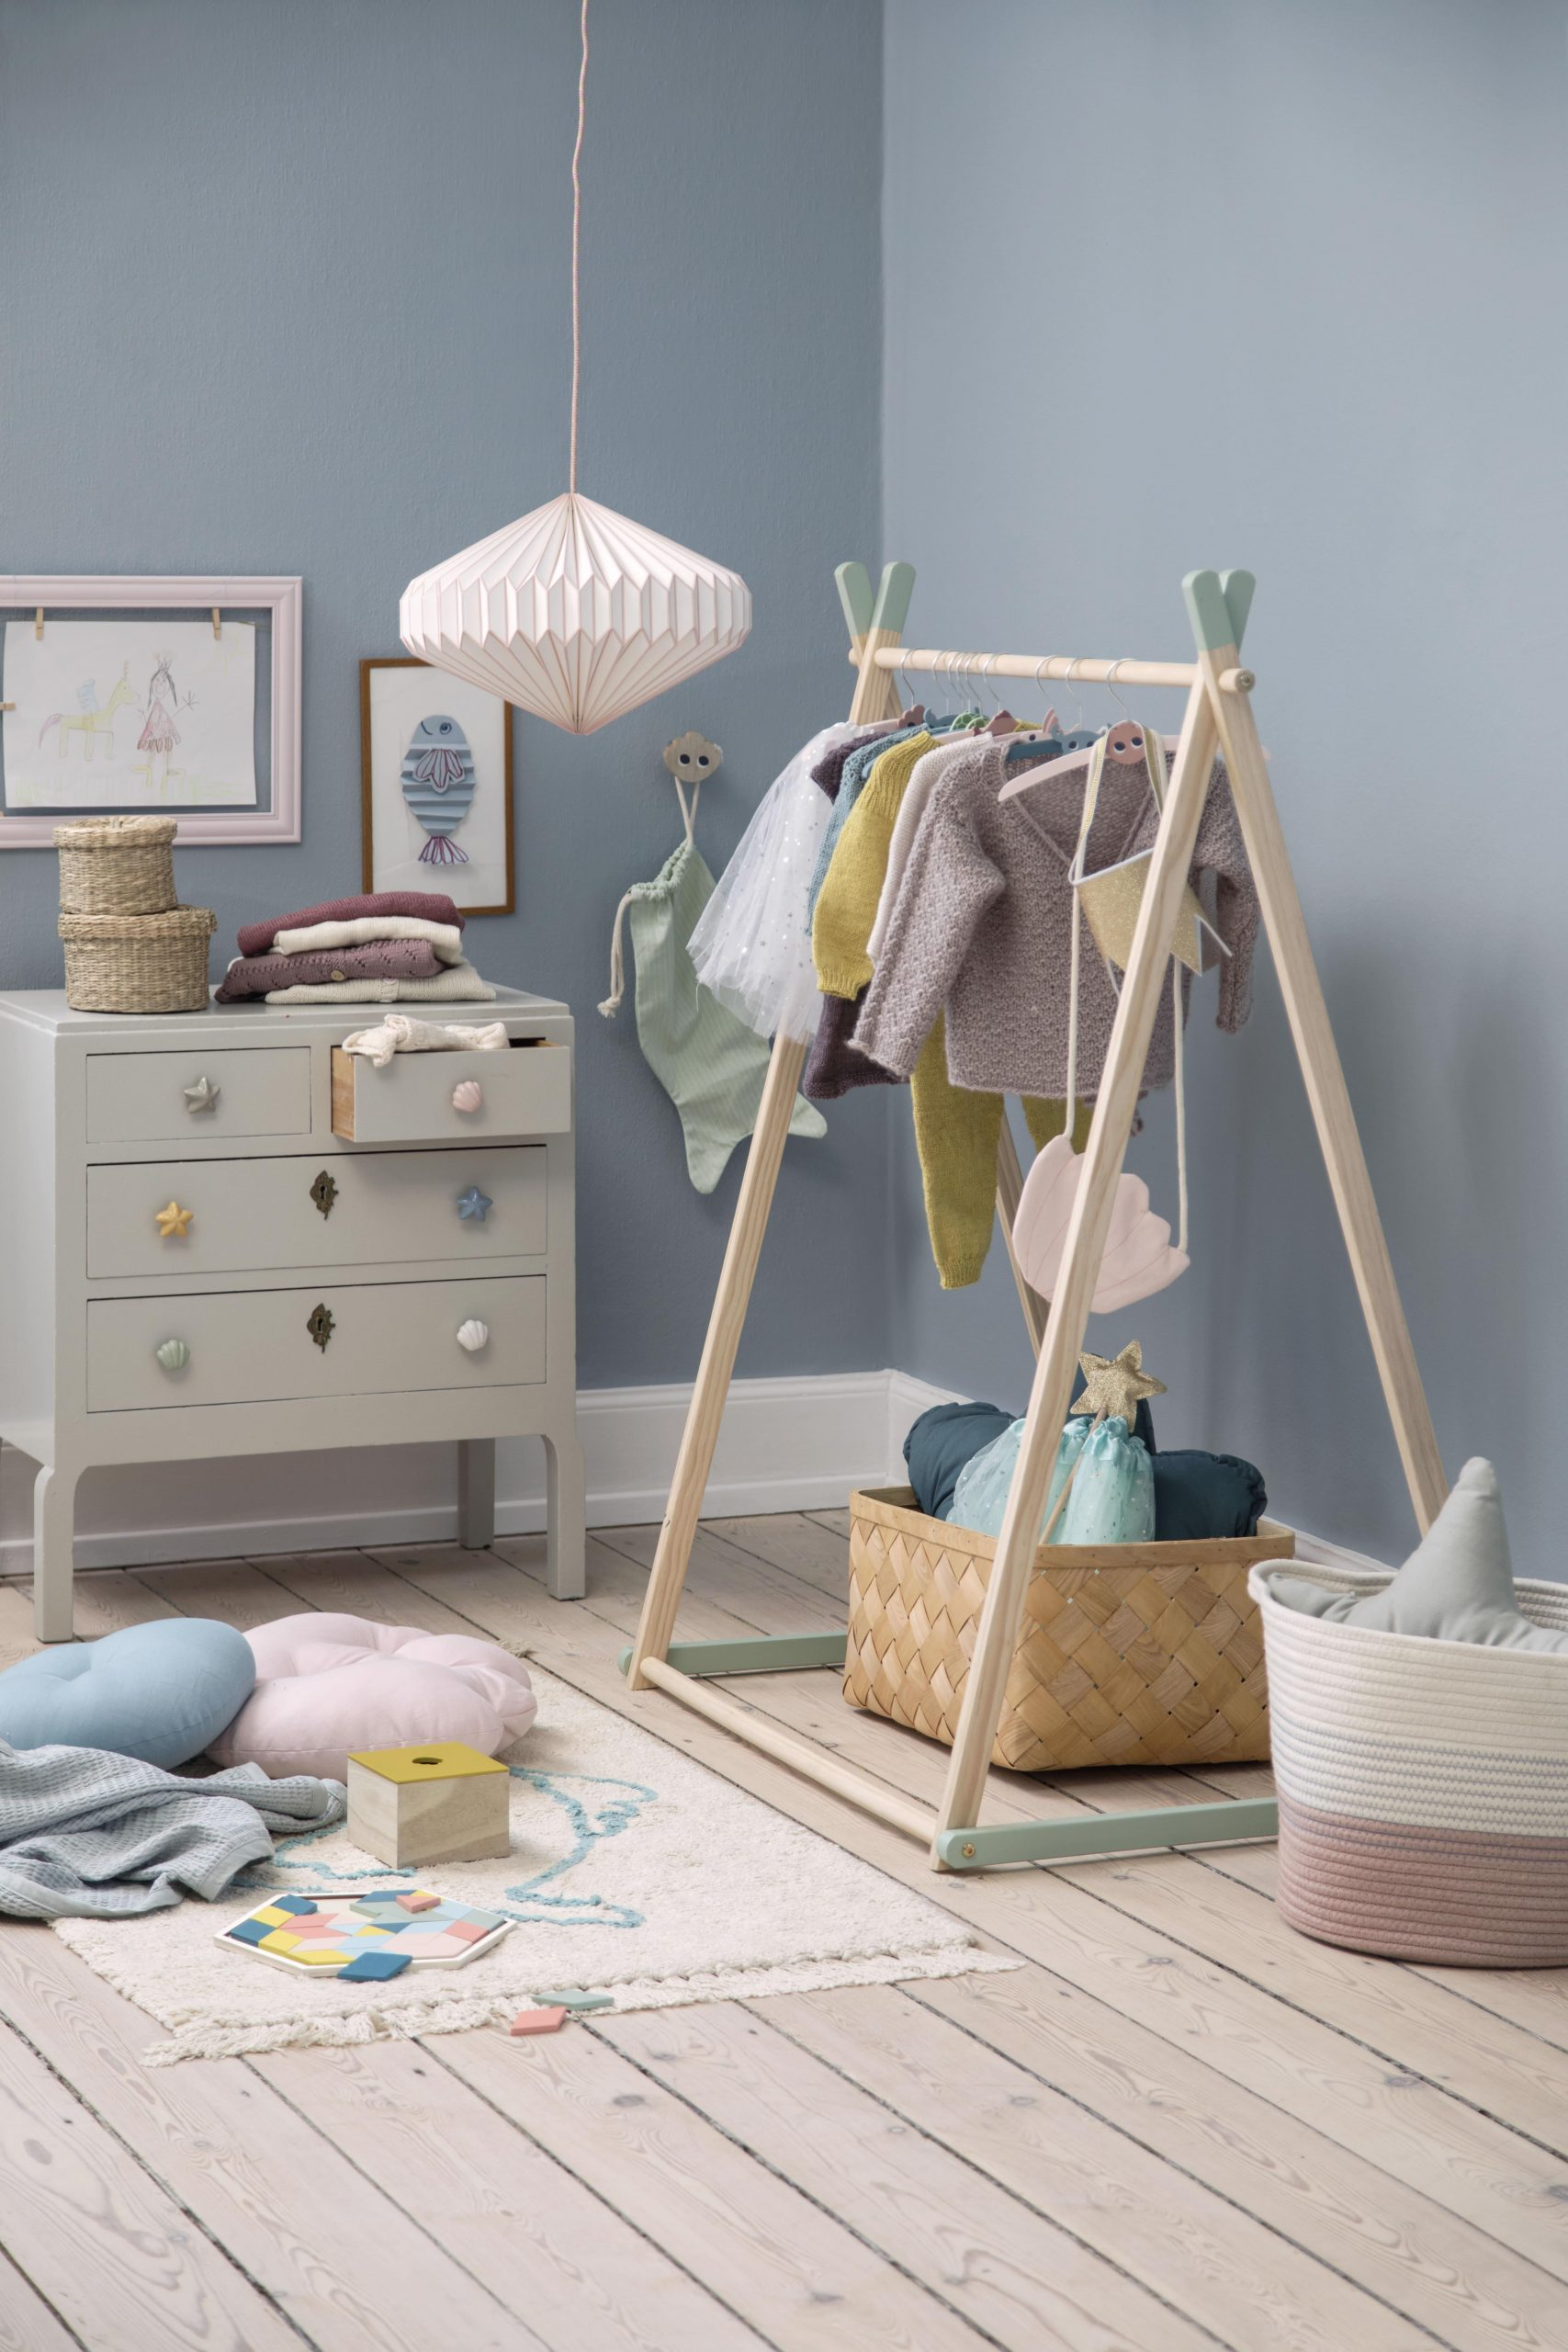 Available 23 April 2020 SostreneGrene 75 min 4480x6720 1 scaled - Sostrene Grene - Kinderinterieur en Speelgoed Collectie 2020